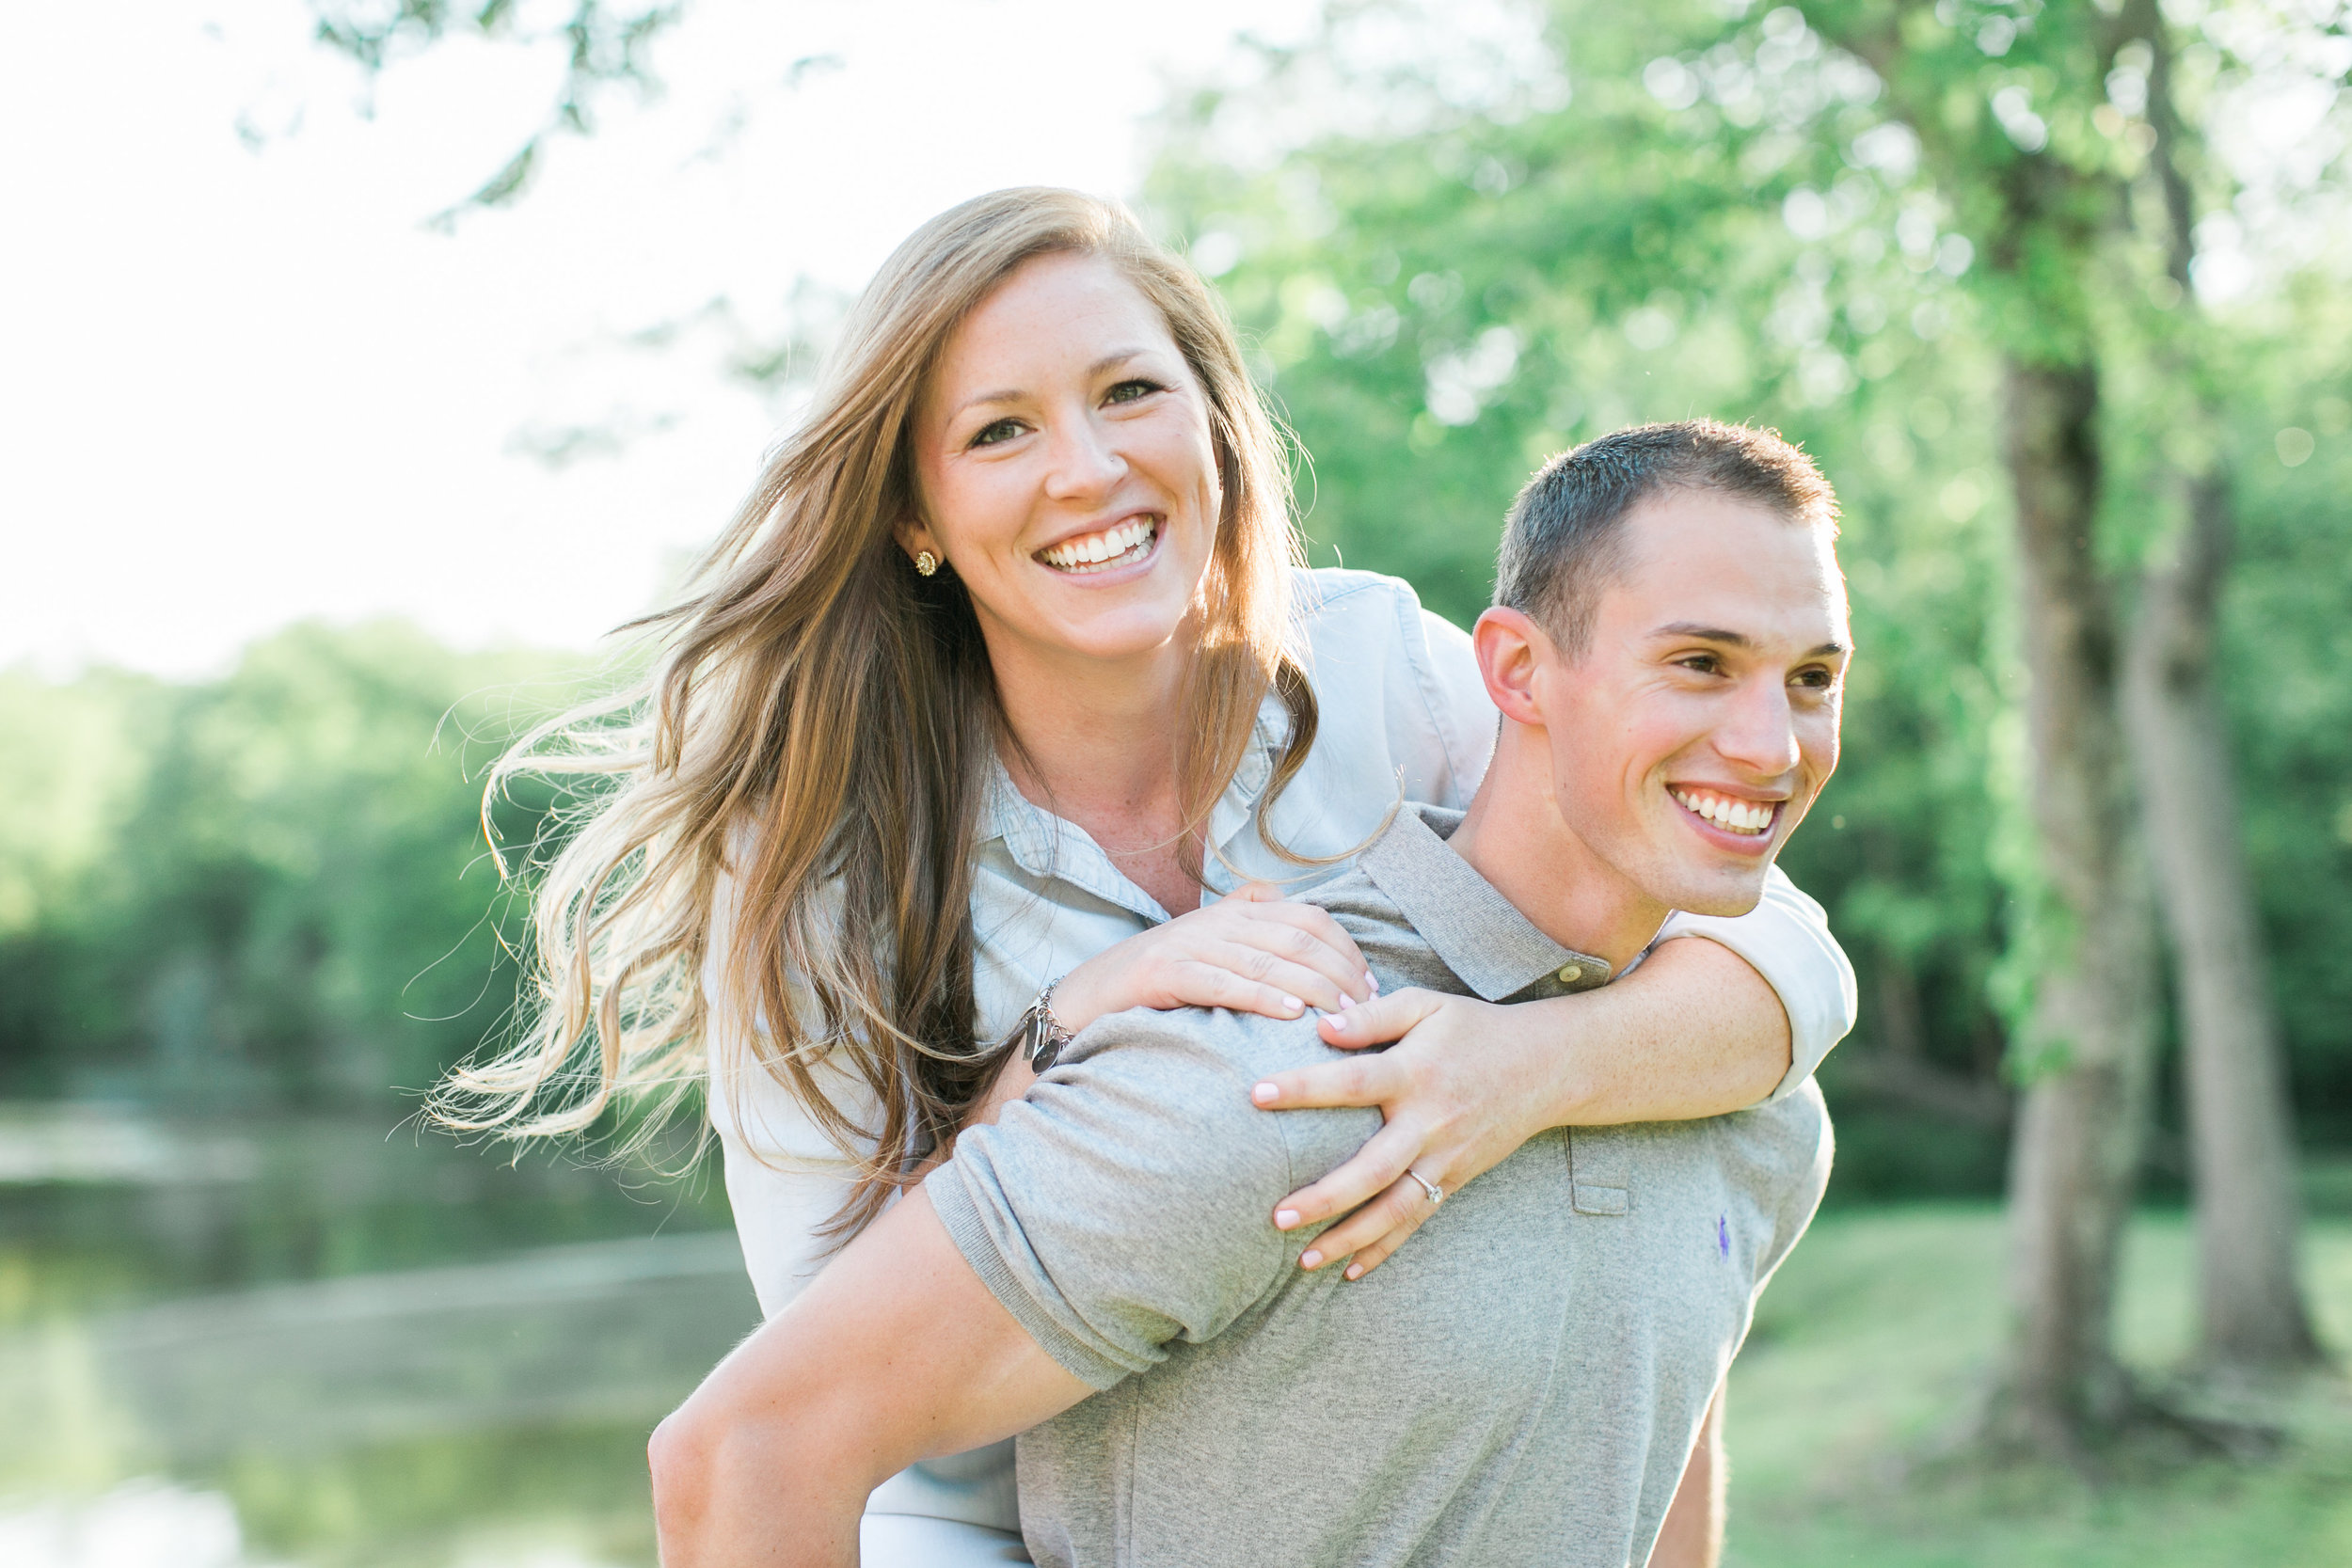 Anna and Will s Engagement Session-anna will-0029.jpg